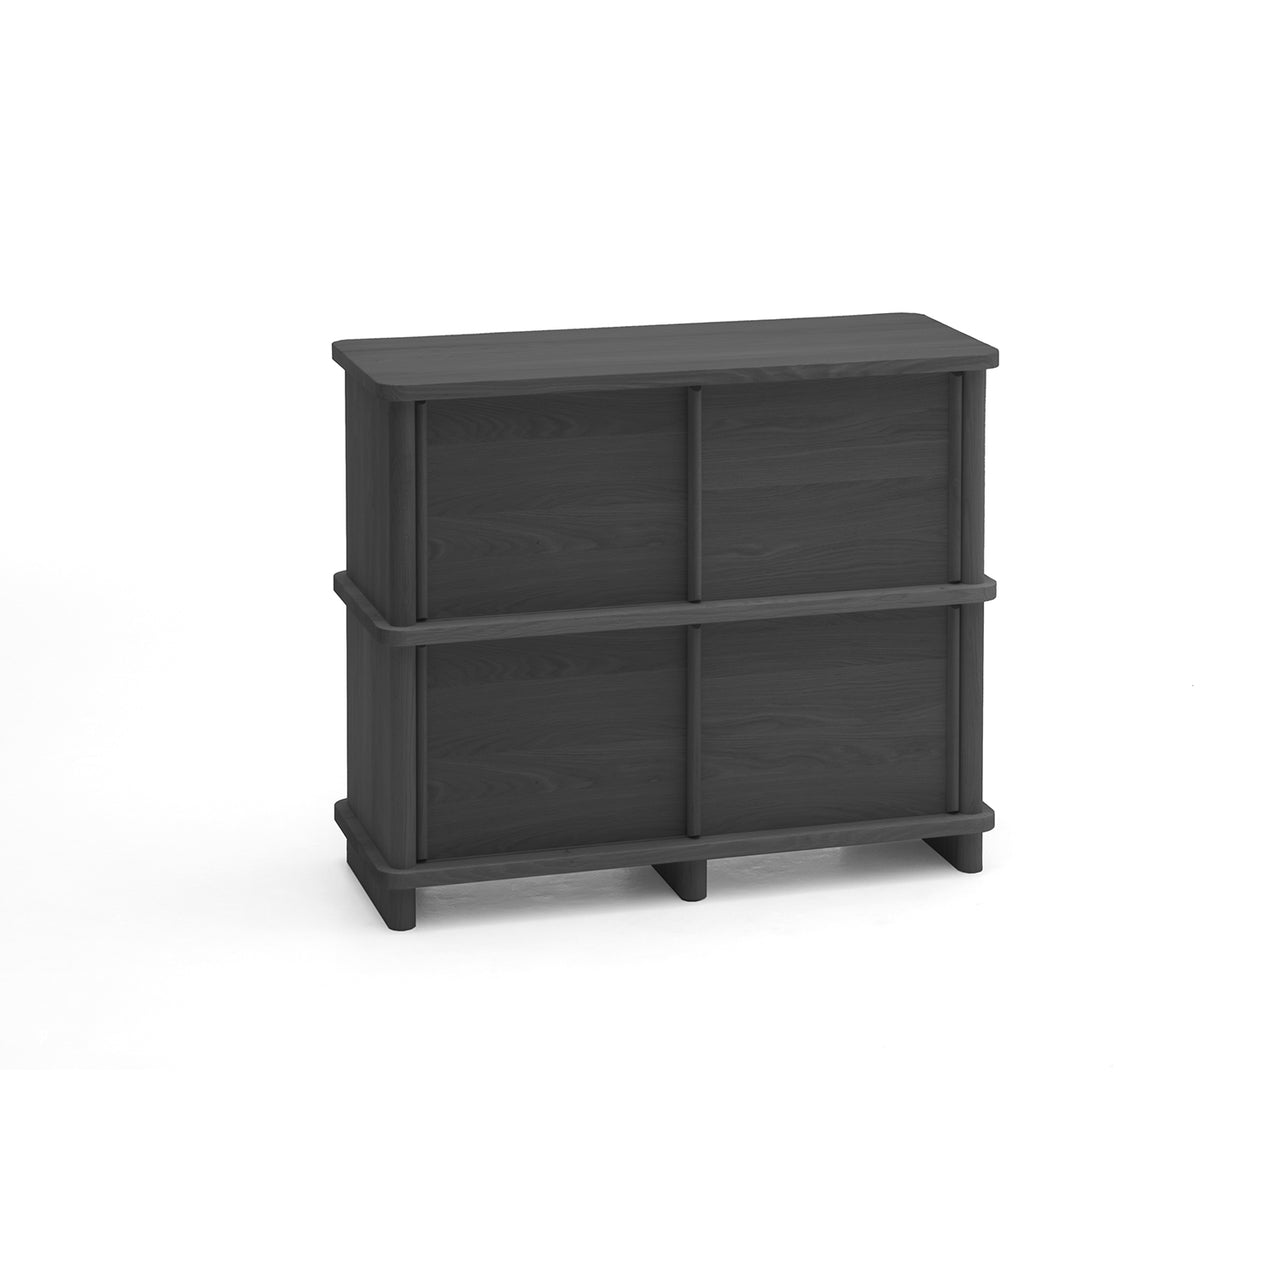 Prop Sideboard: Small + Black Oak